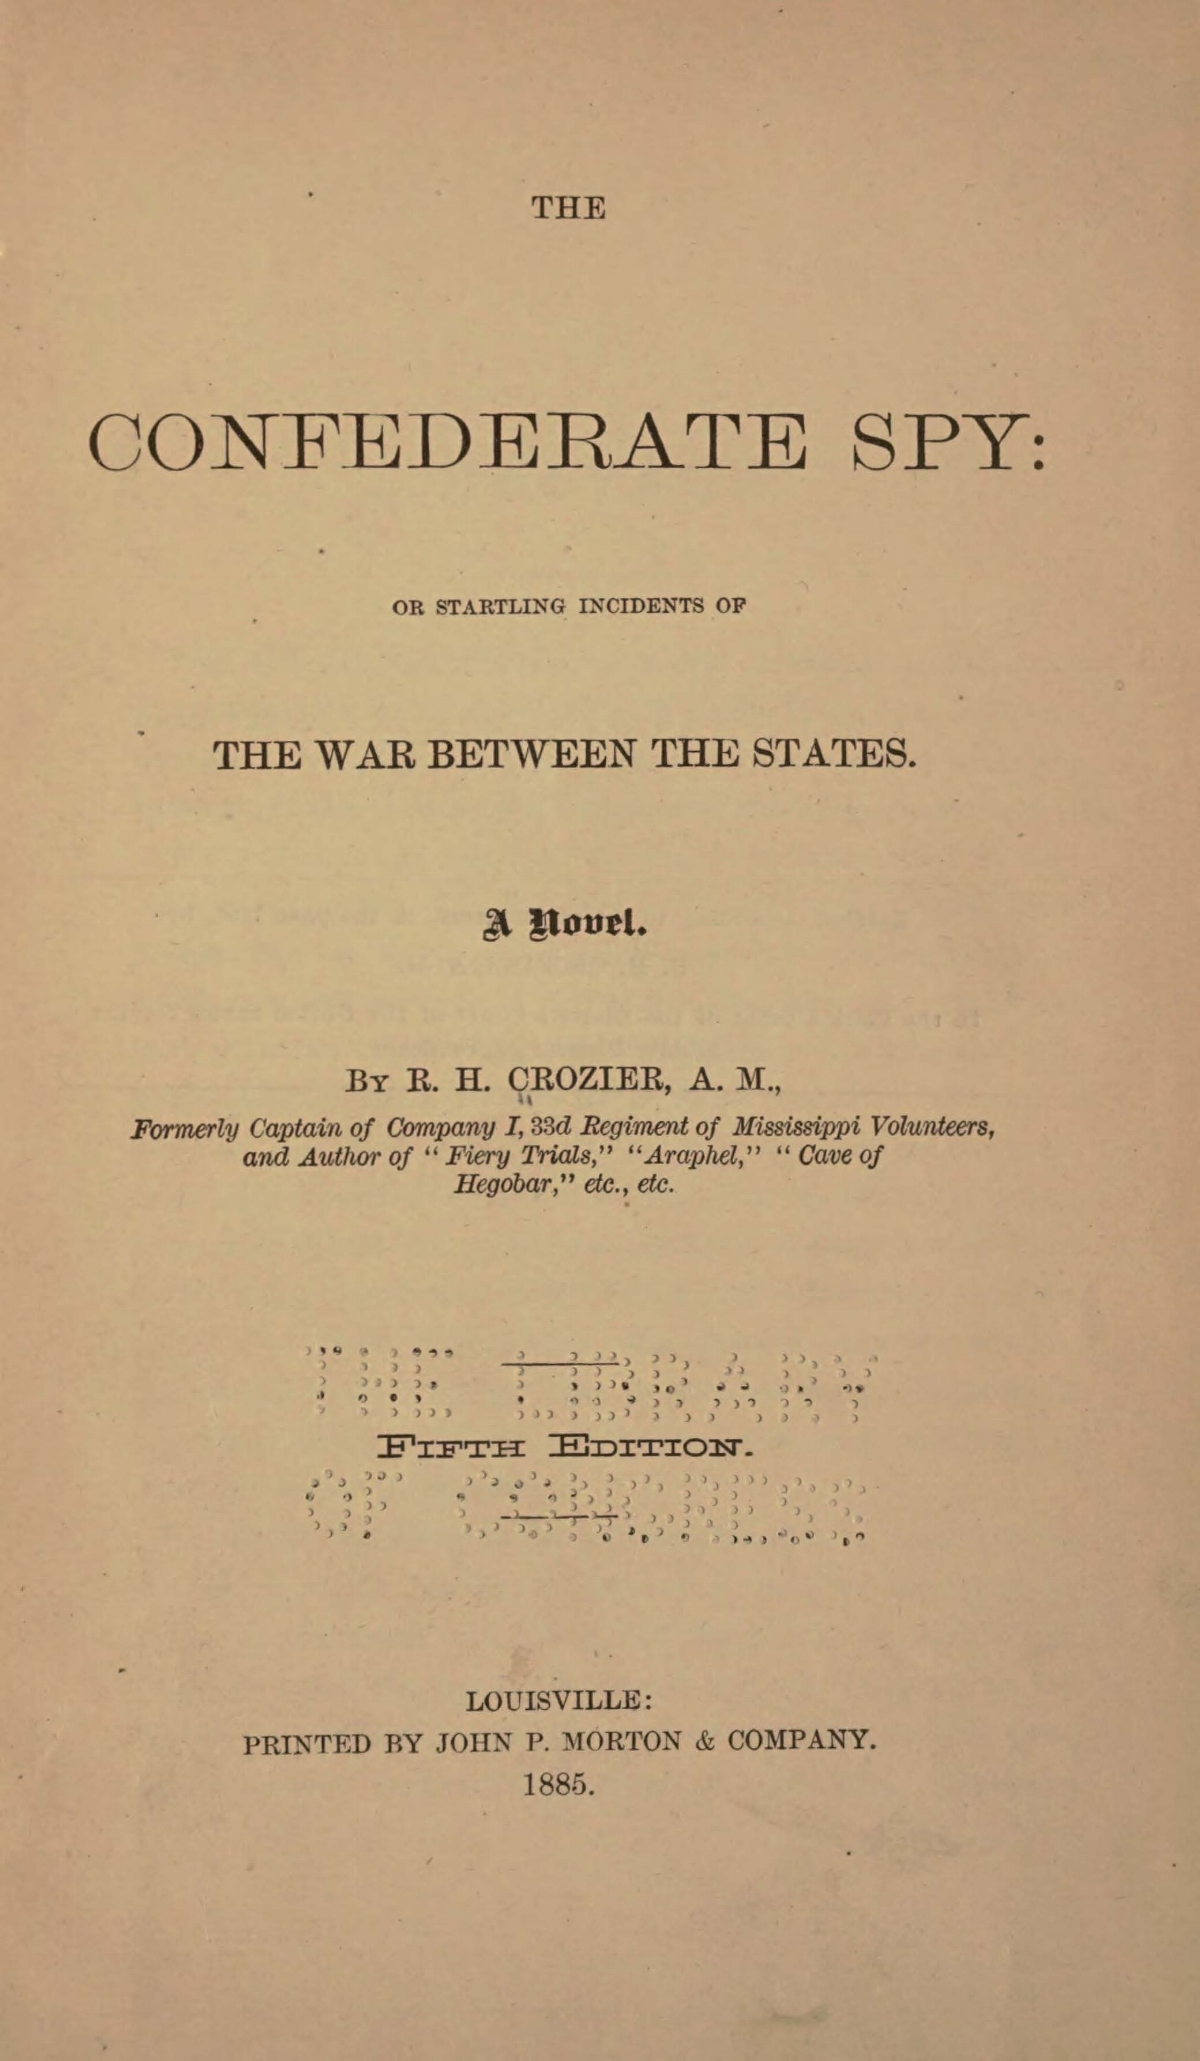 Crozier, Robert Hoskins, The Confederate Spy 5th ed. Title Page.jpg